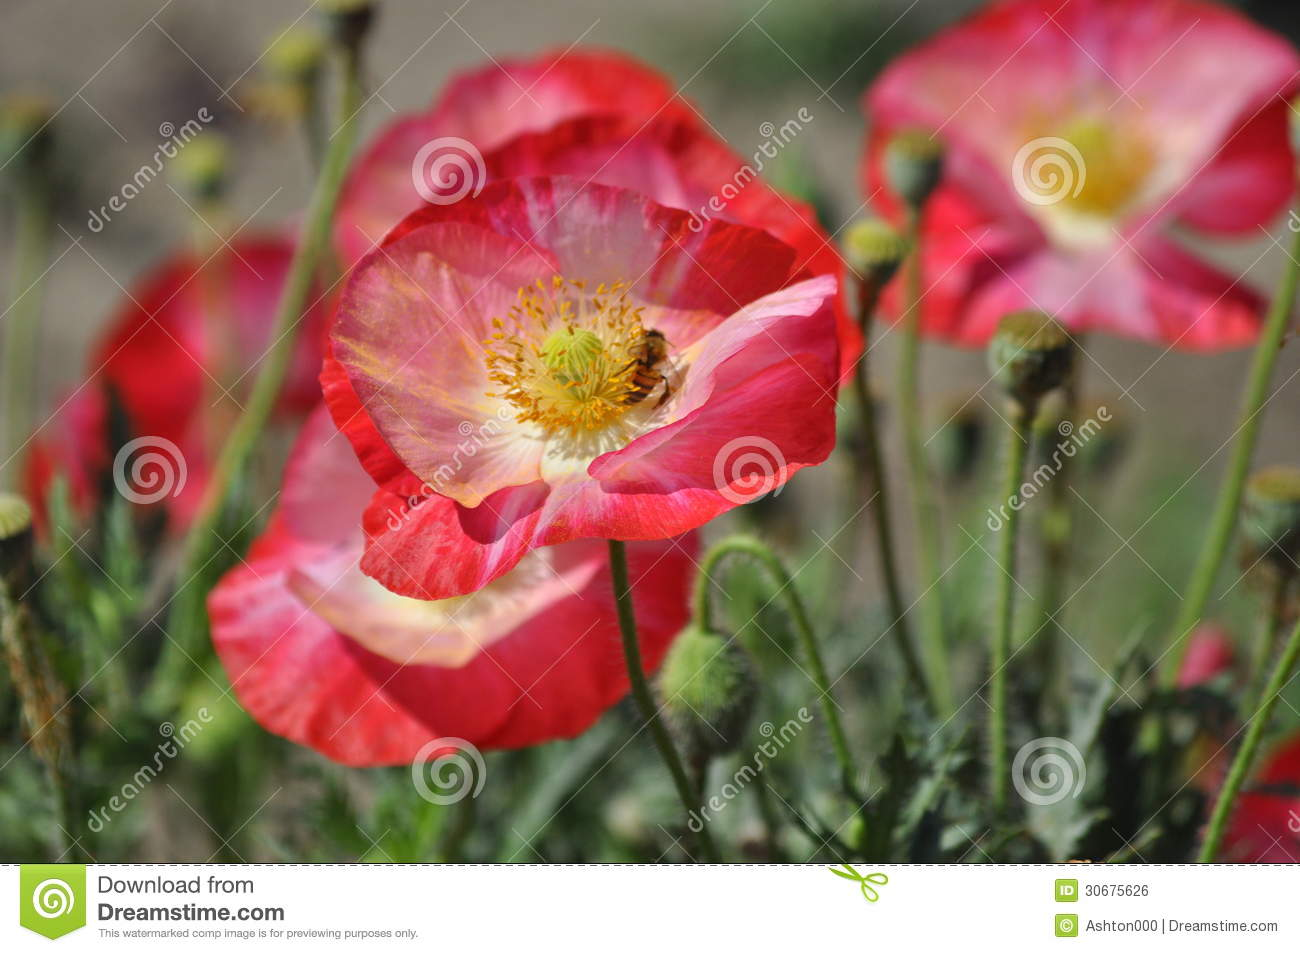 Bright Red Poppies with bee